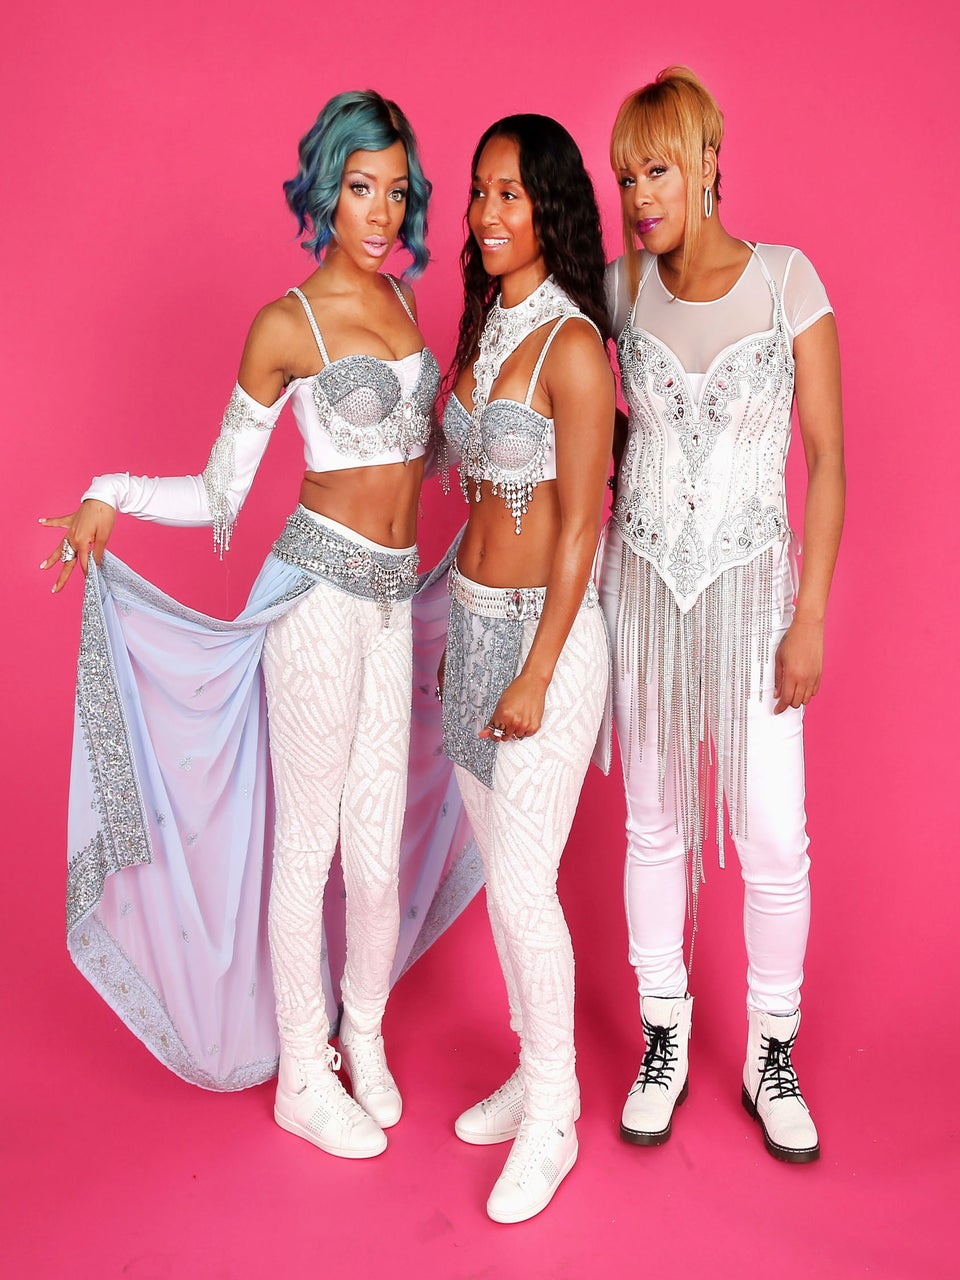 Must-See: TLC Performs 'Waterfalls' at the American Music Awards, Featuring Lil Mama